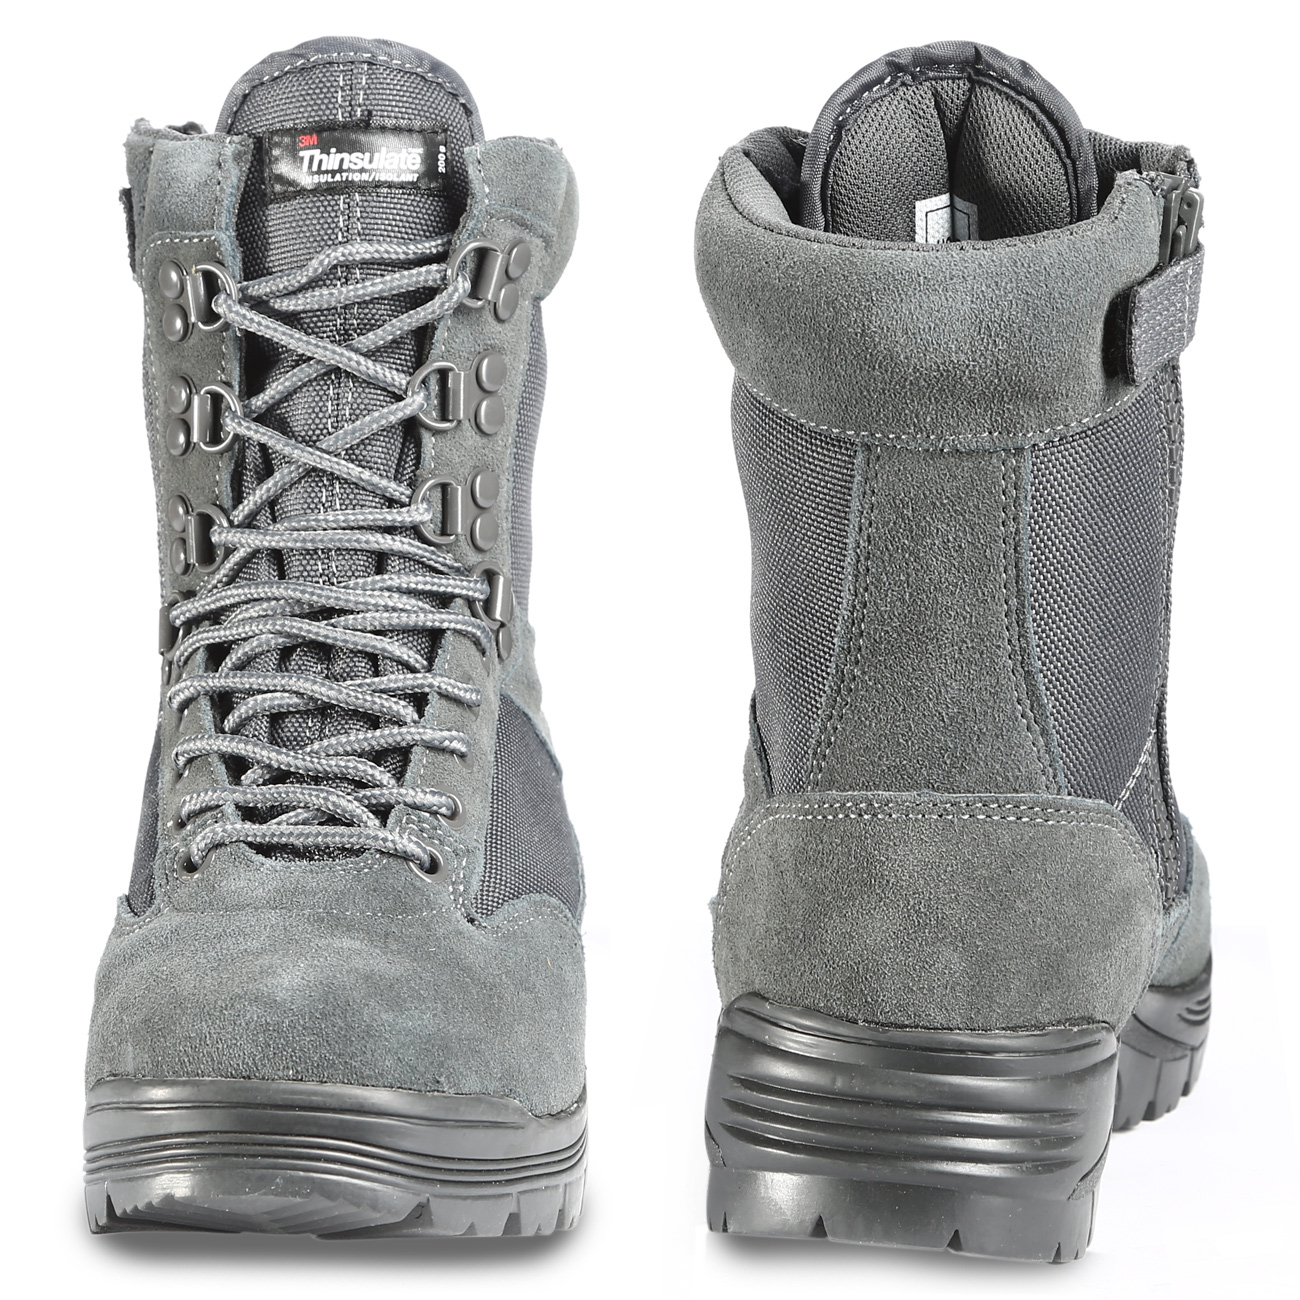 Mil-Tec Stiefel Tactical Boots YKK-Zipper urban grey 3